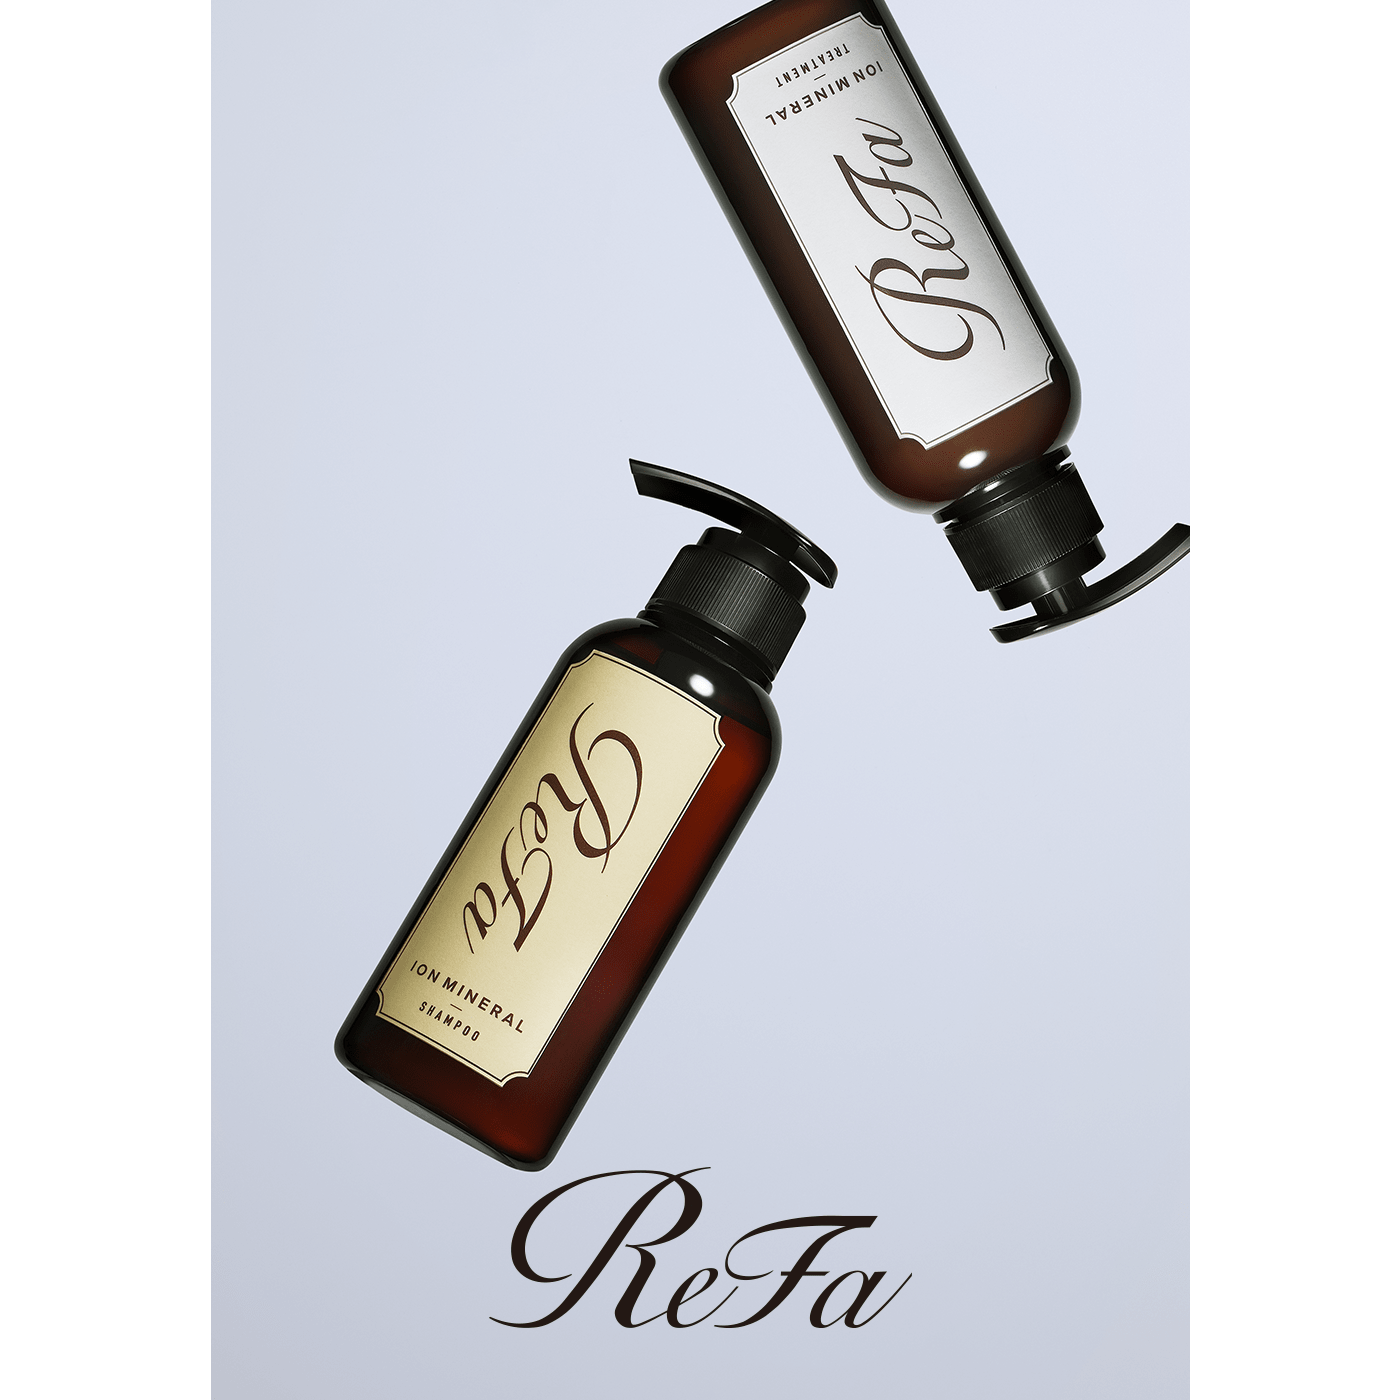 Introducing ReFa ION CARE SHAMPOO, a haircare regimen formulated with Ion Mineral* to restore your hair's ion balance for silky soft, healthy-looking results.